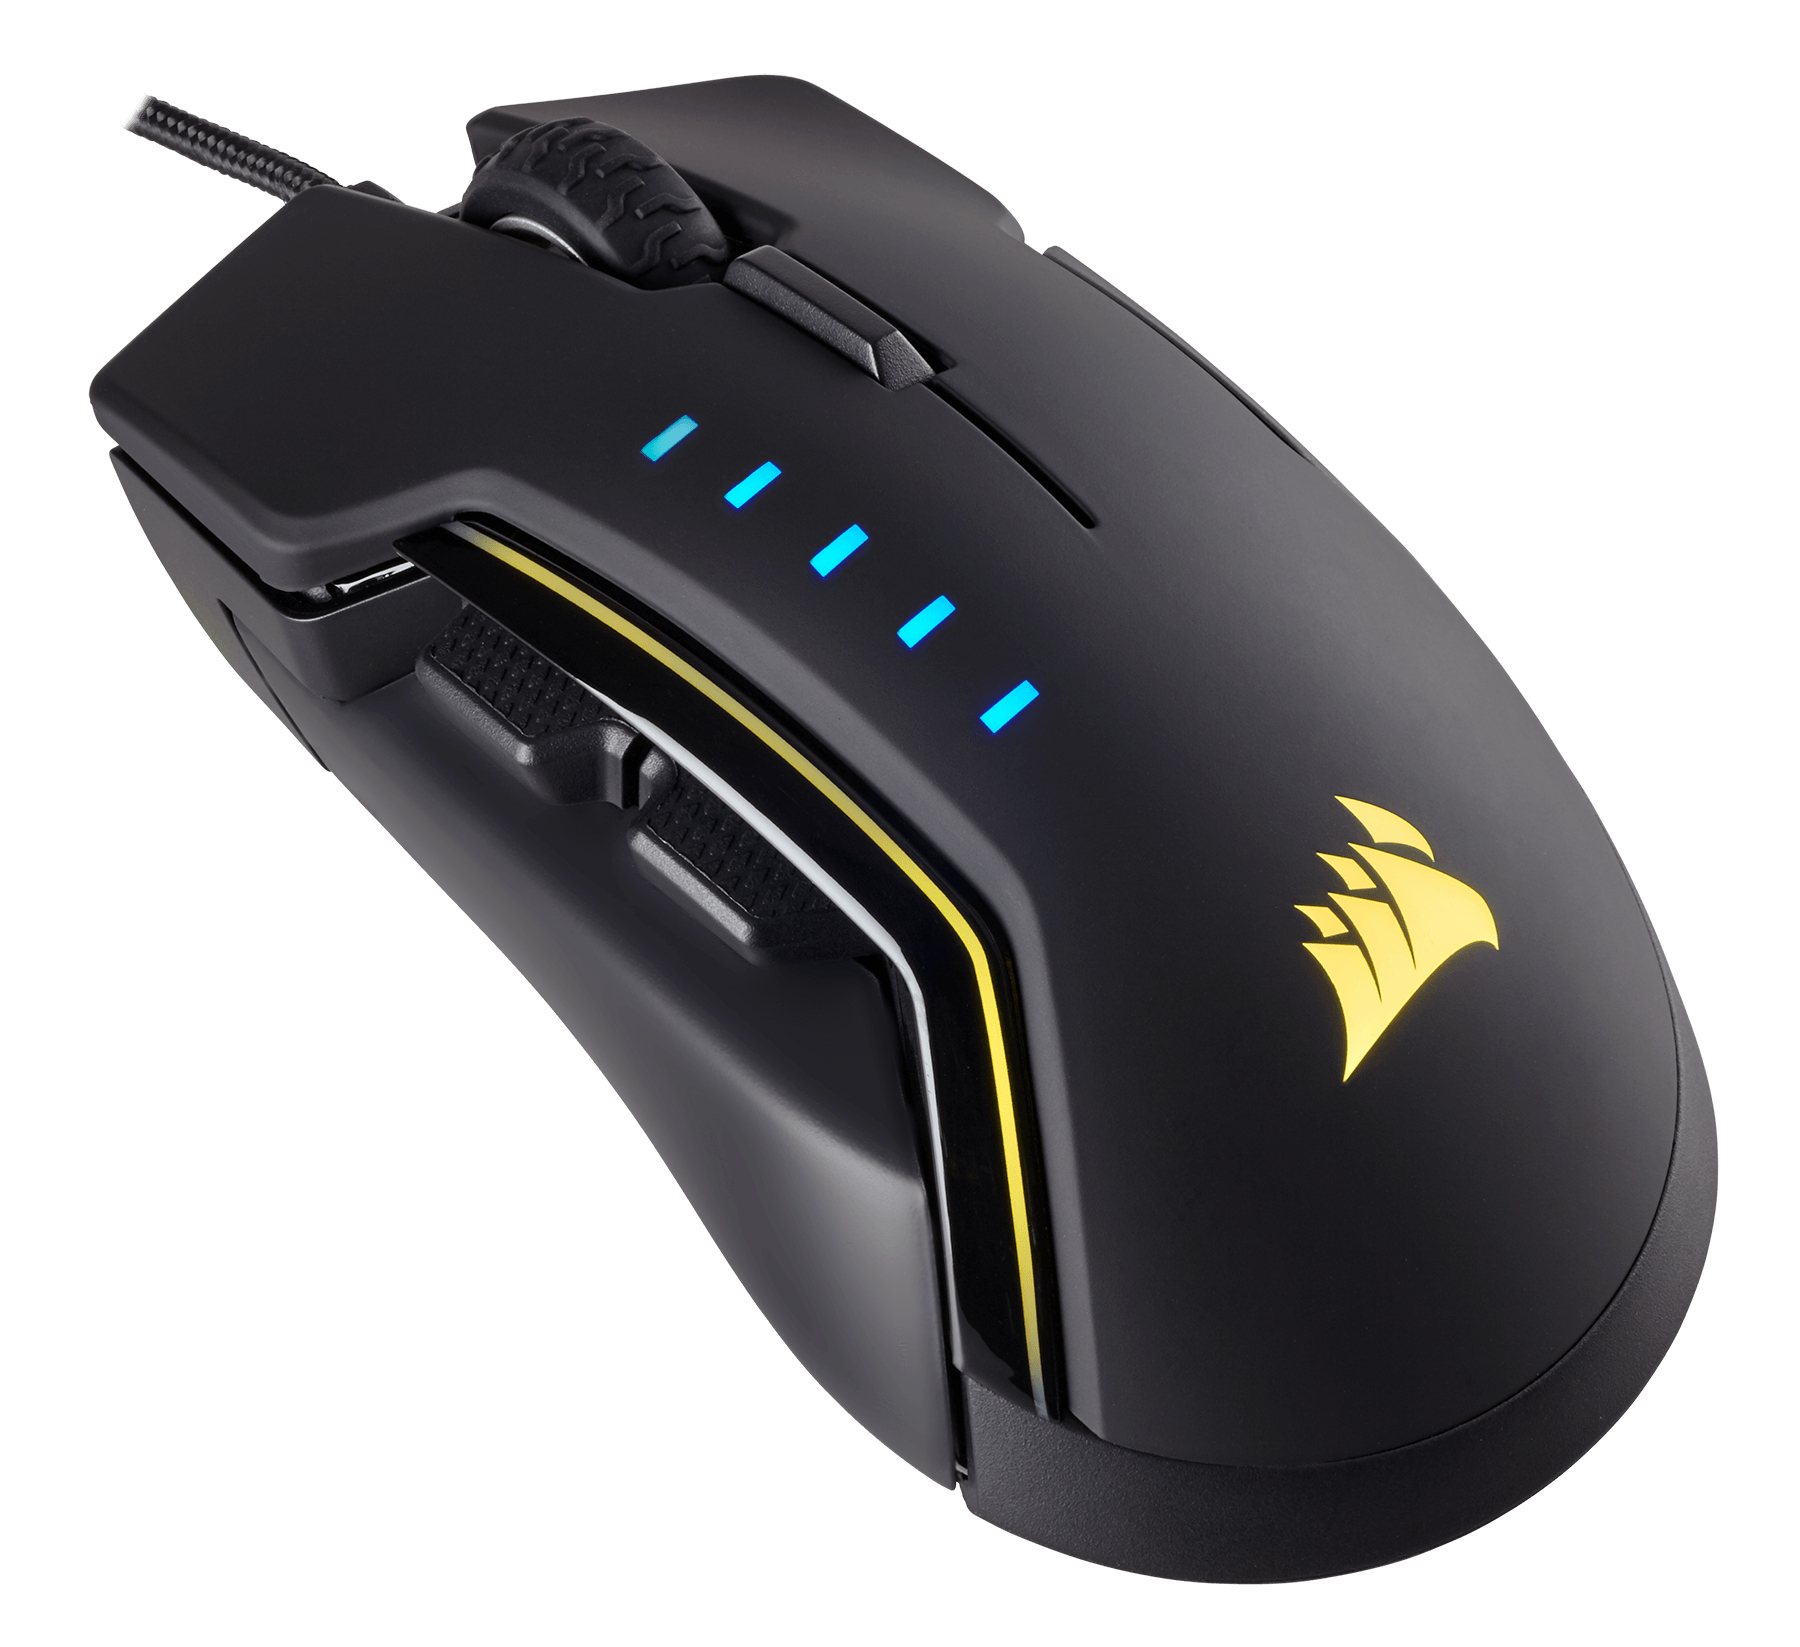 CORSAIR CH-9302011-EU USB OPTICAL 16000DPI RIGHT-HAND BLACK,YELLOW MICE